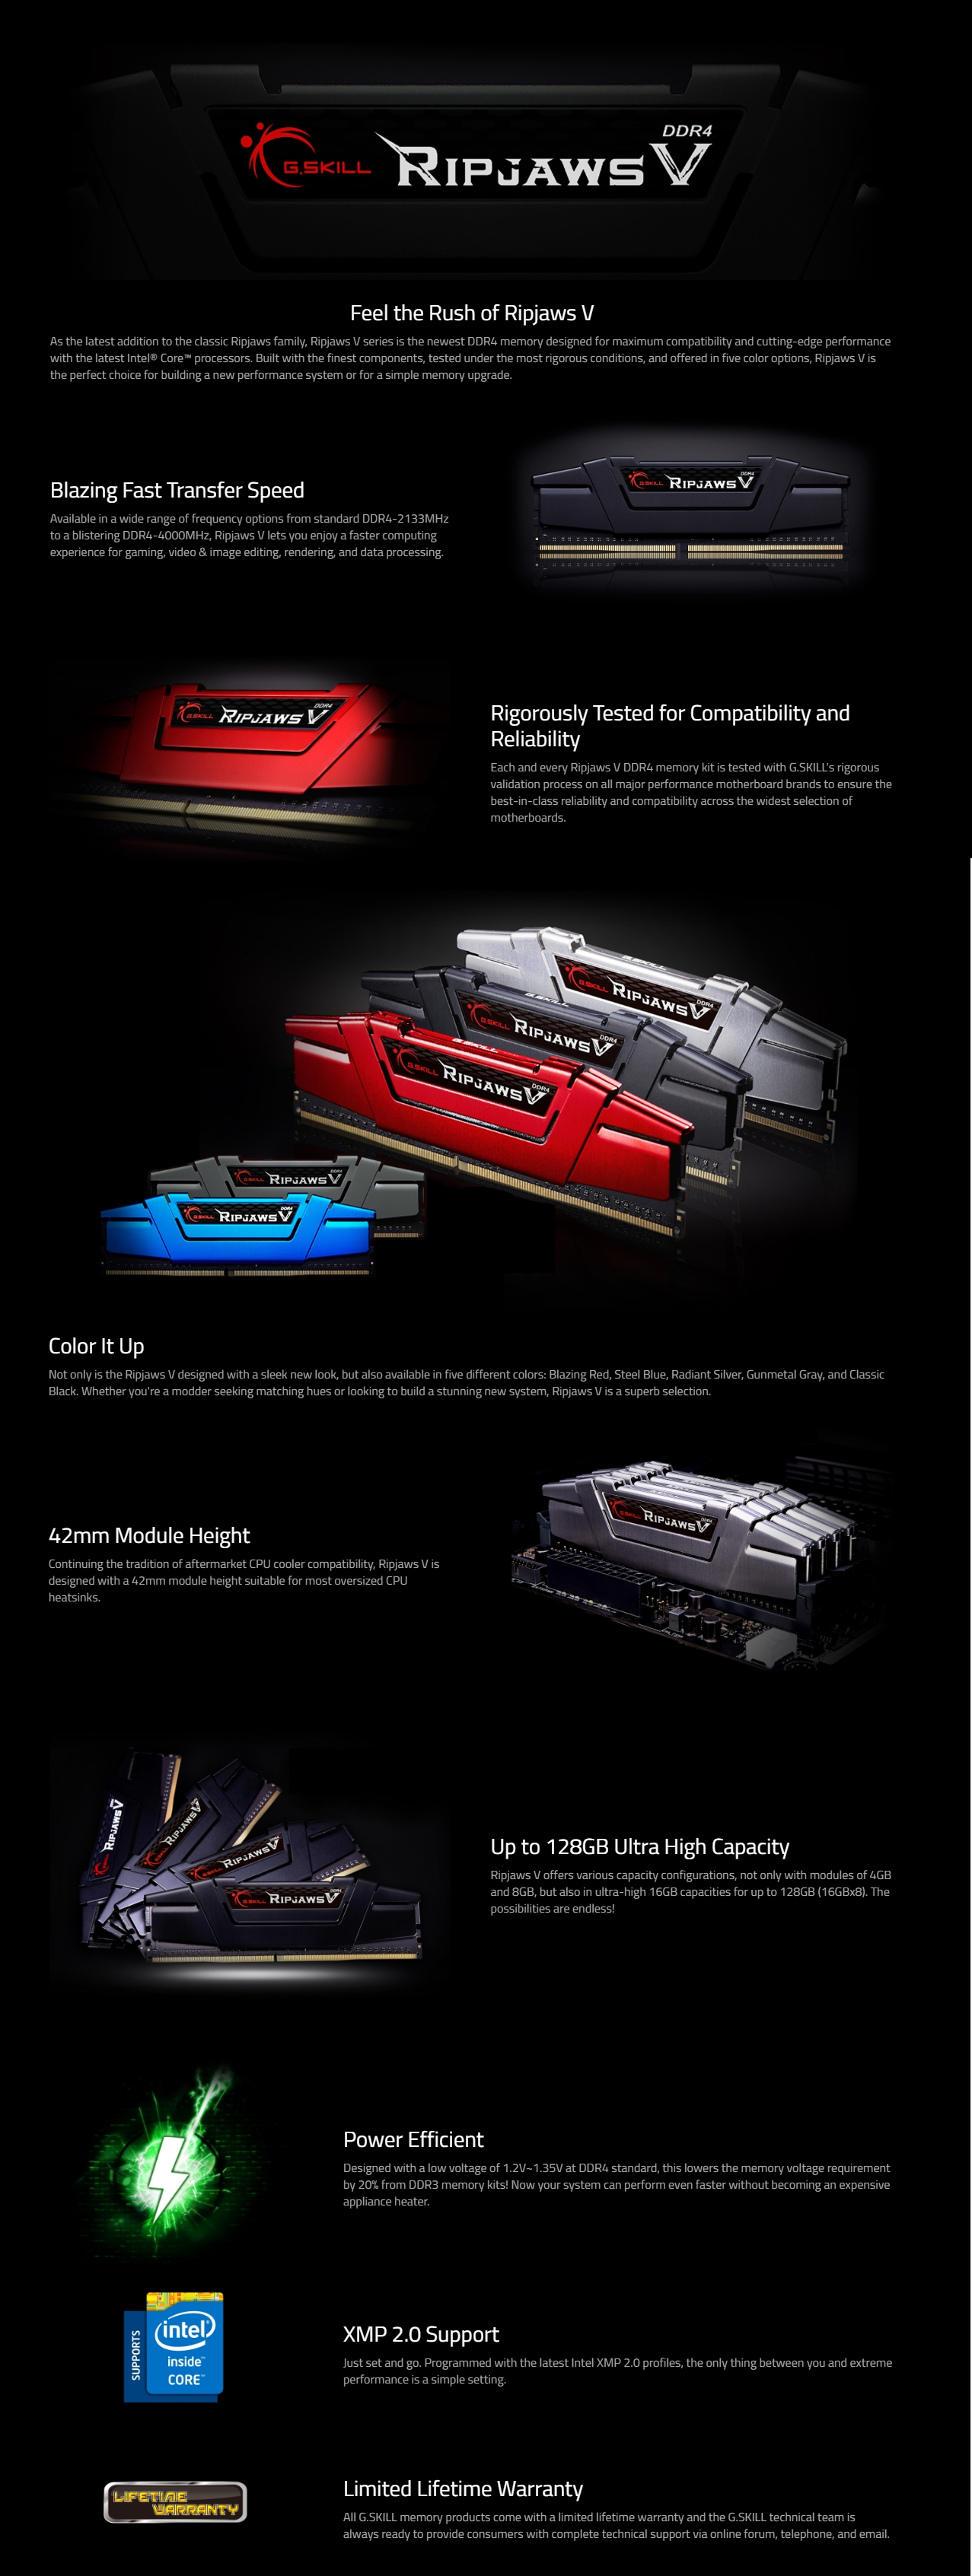 A large marketing image providing additional information about the product G.Skill 128GB Kit (4x32GB) DDR4 Ripjaws V C18 3600Mhz - Additional alt info not provided